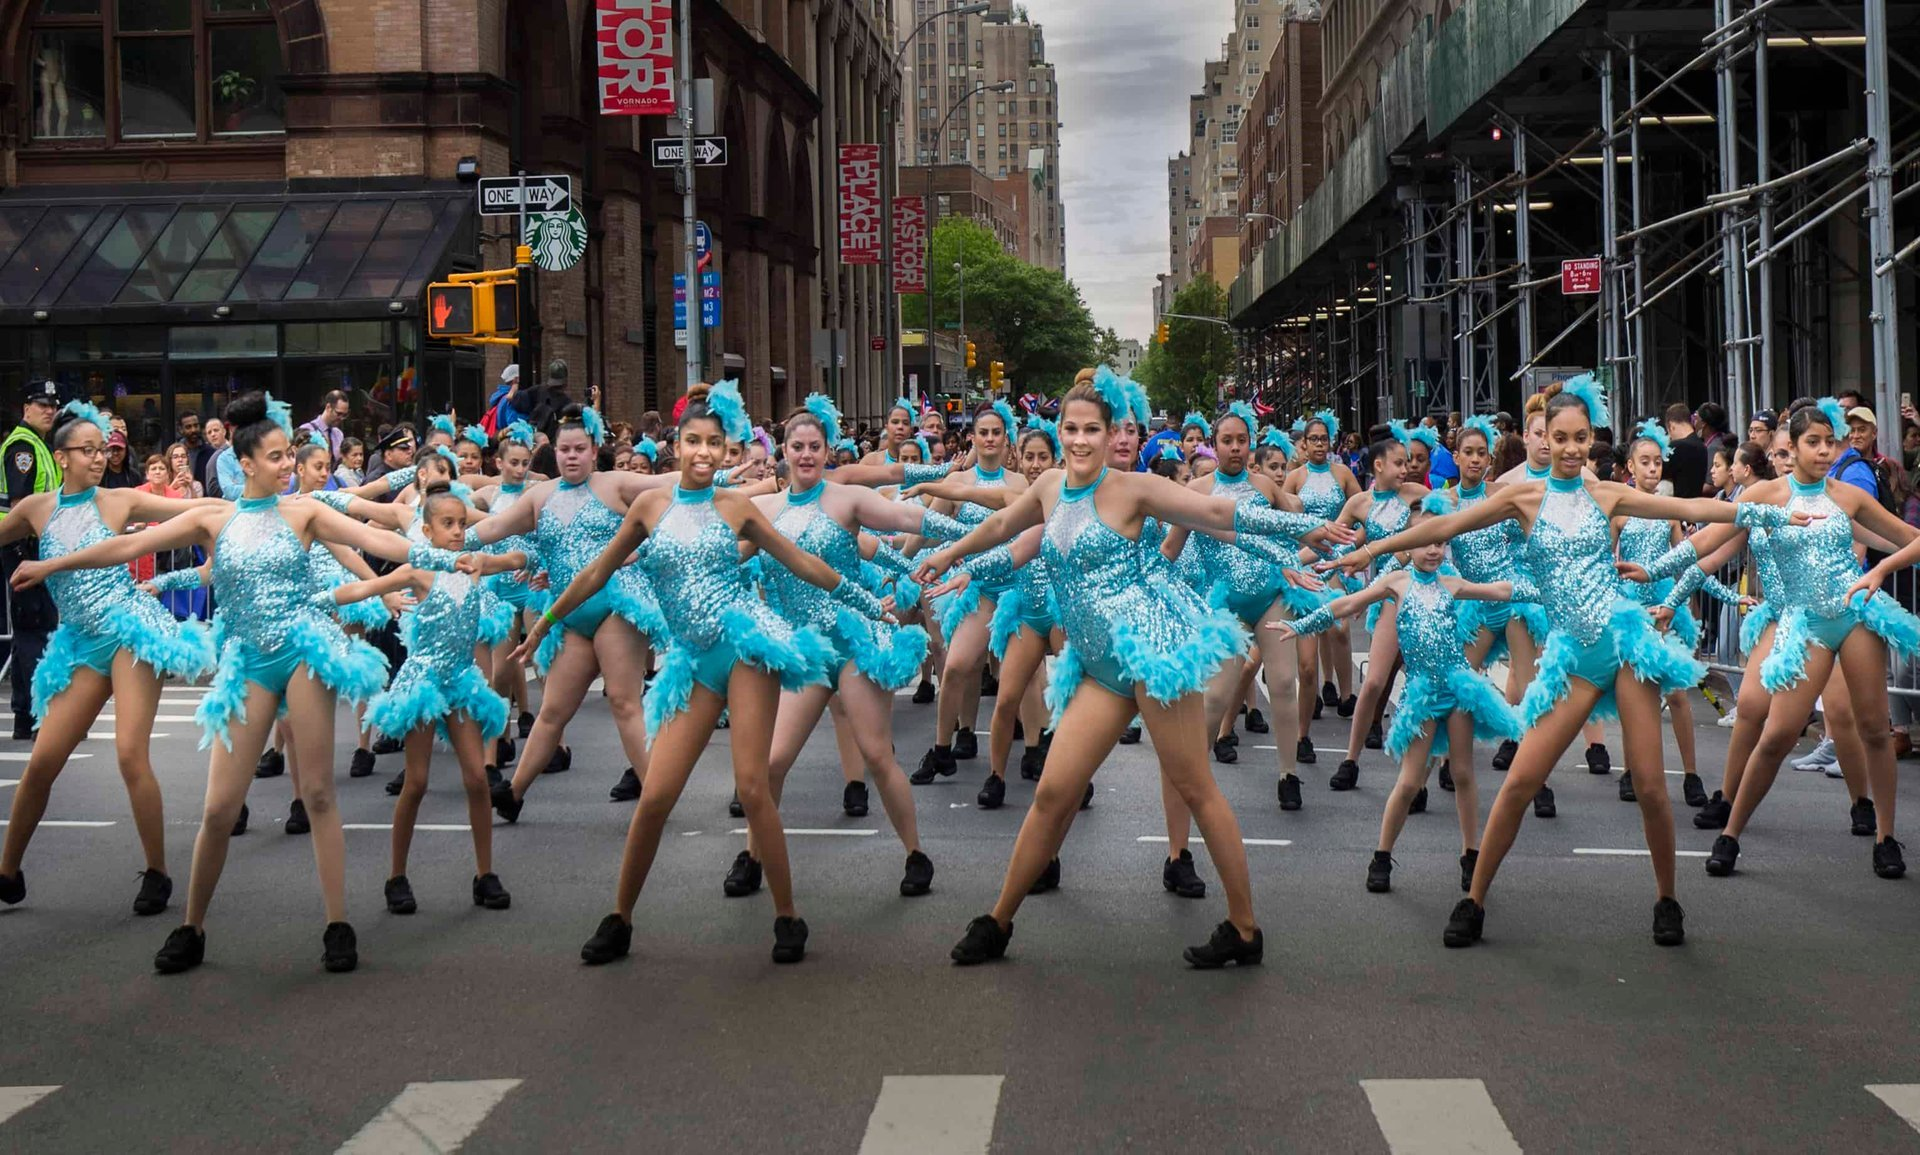 Dance Parade & Festival in New York - Best Season 2020